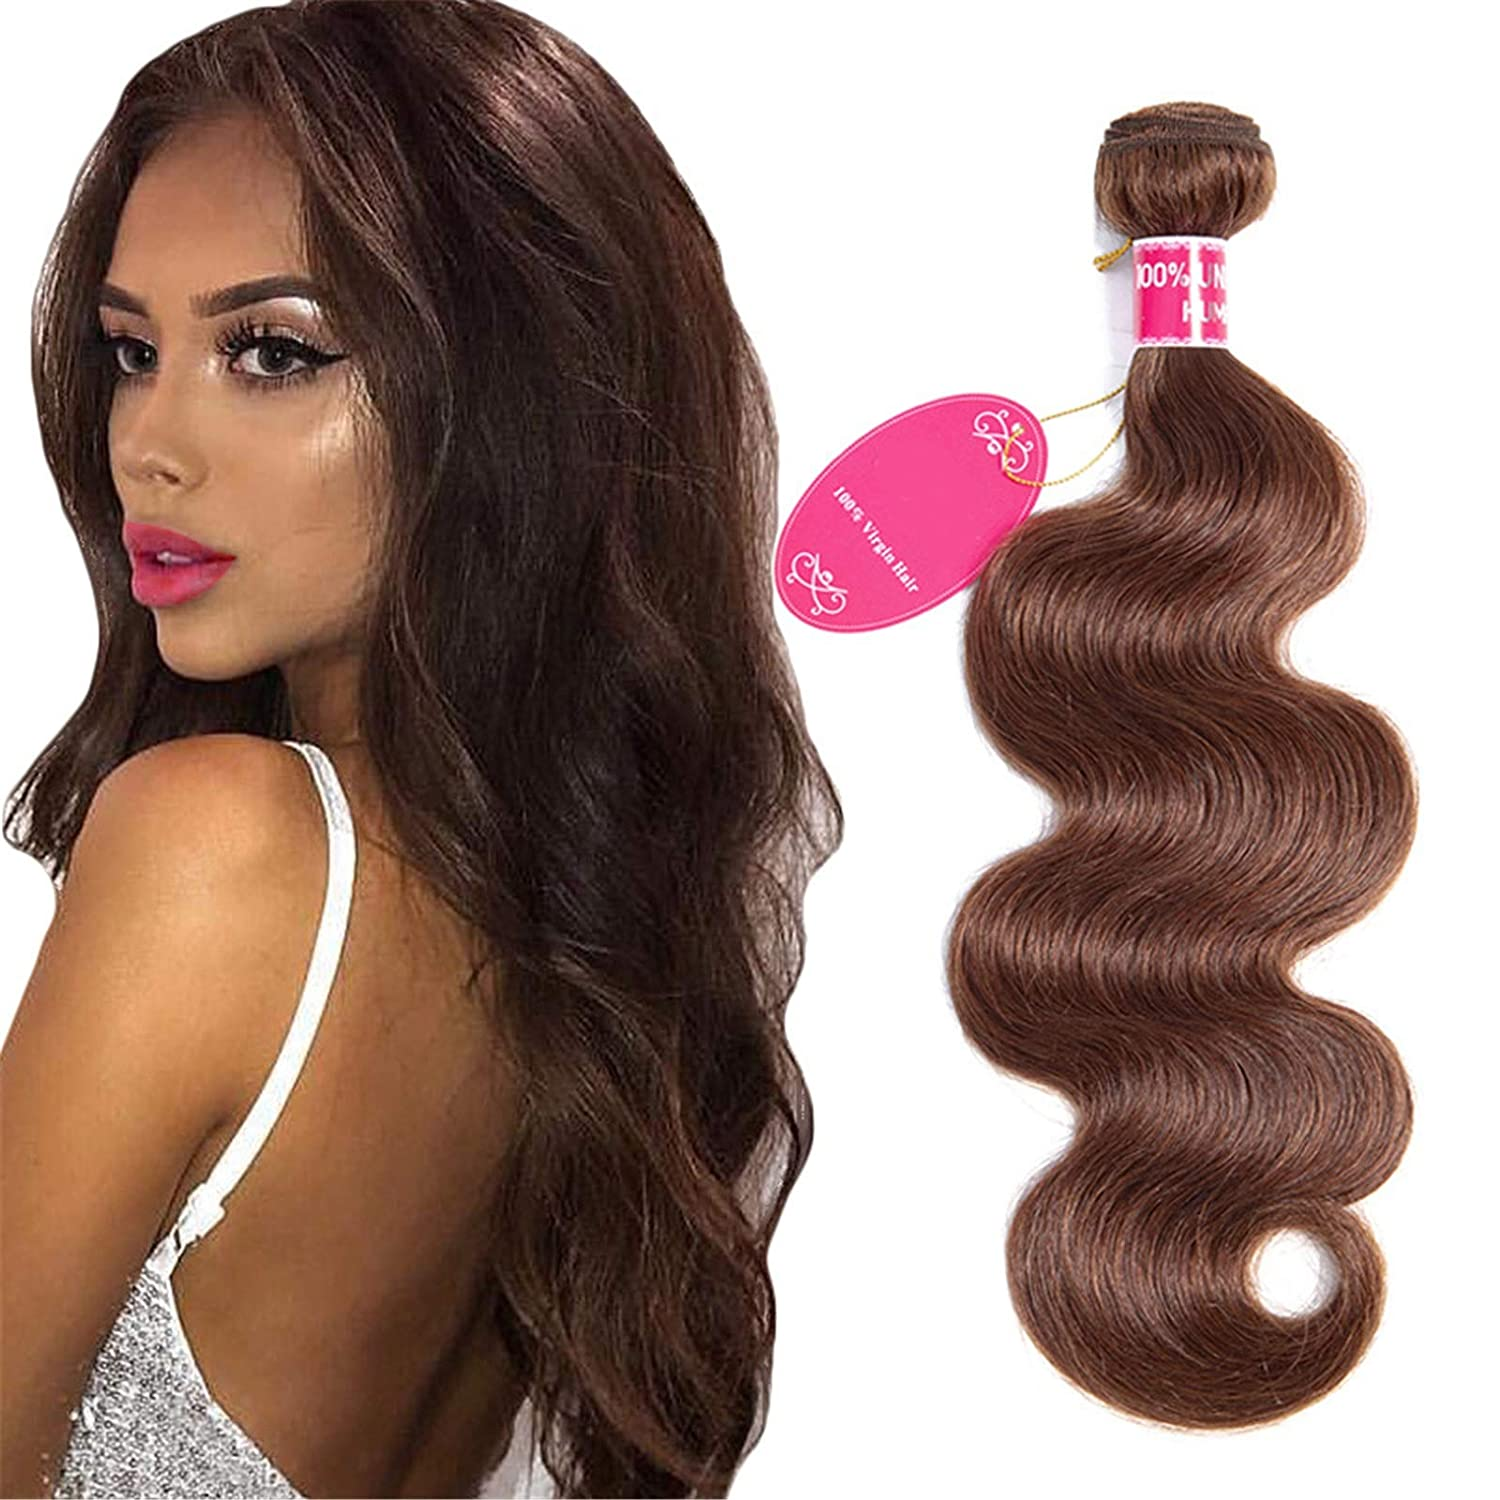 QAZPL Body Weave 3PCS Virgin Human Hair 2021 service spring and summer new In Wig Women For 8-26